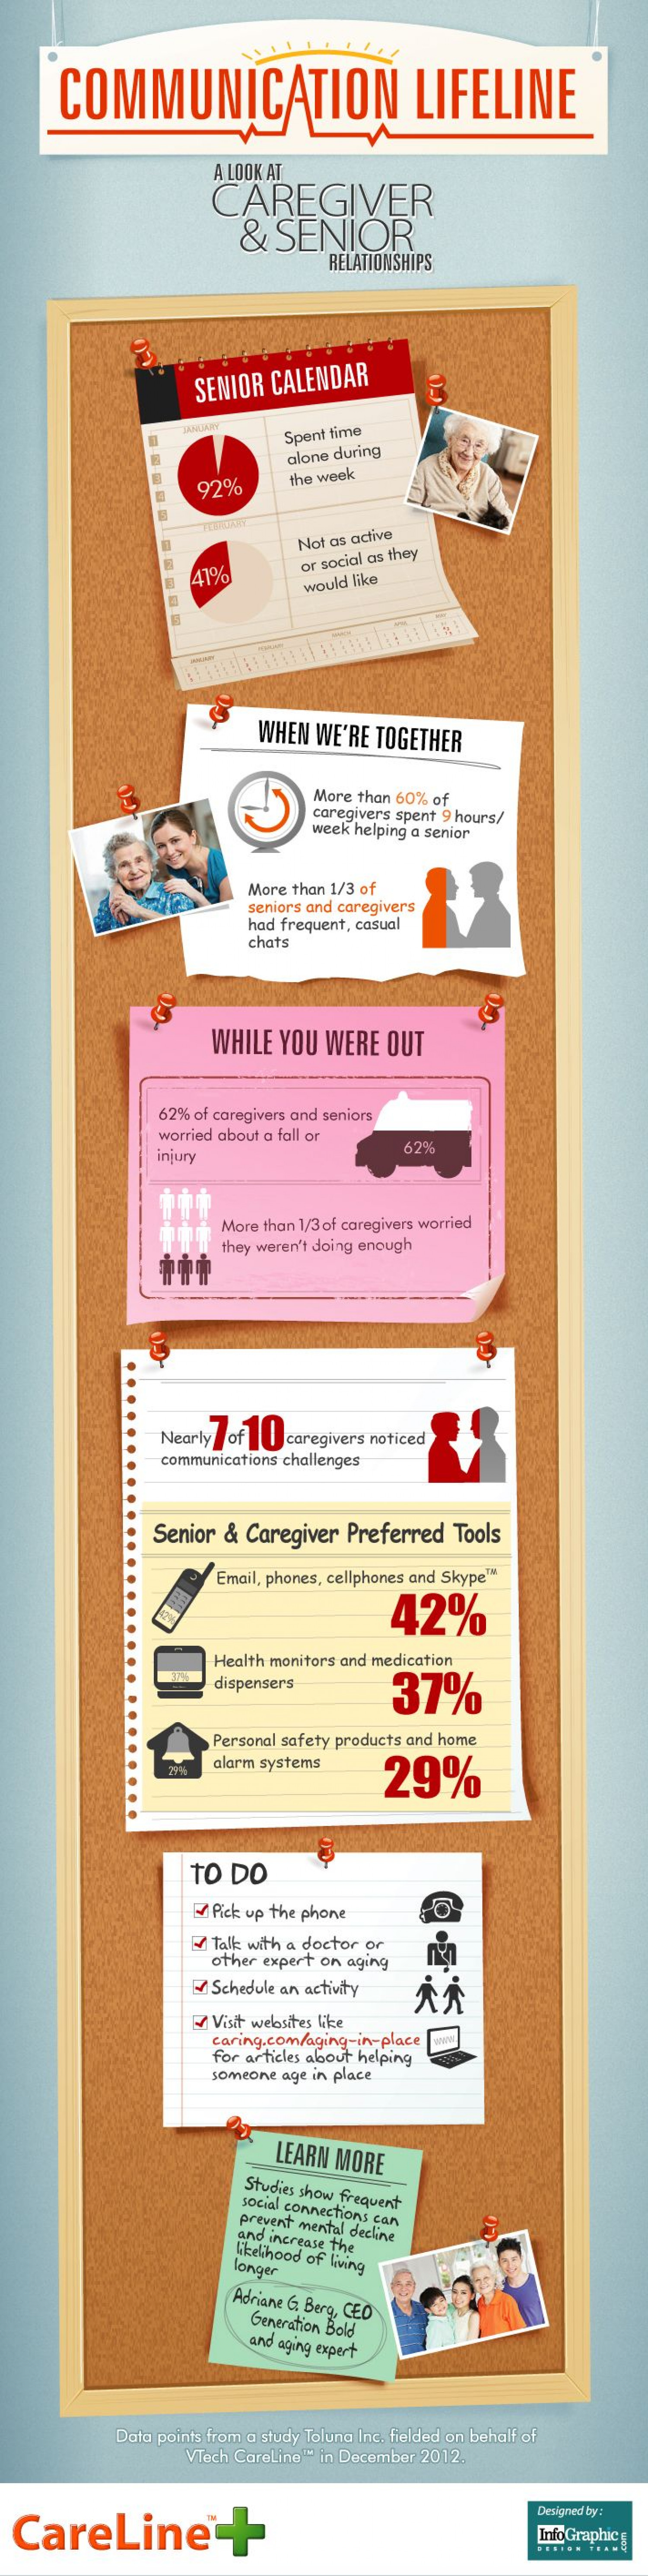 Communication Lifeline: A Look at Caregiver & Senior Relationships Infographic